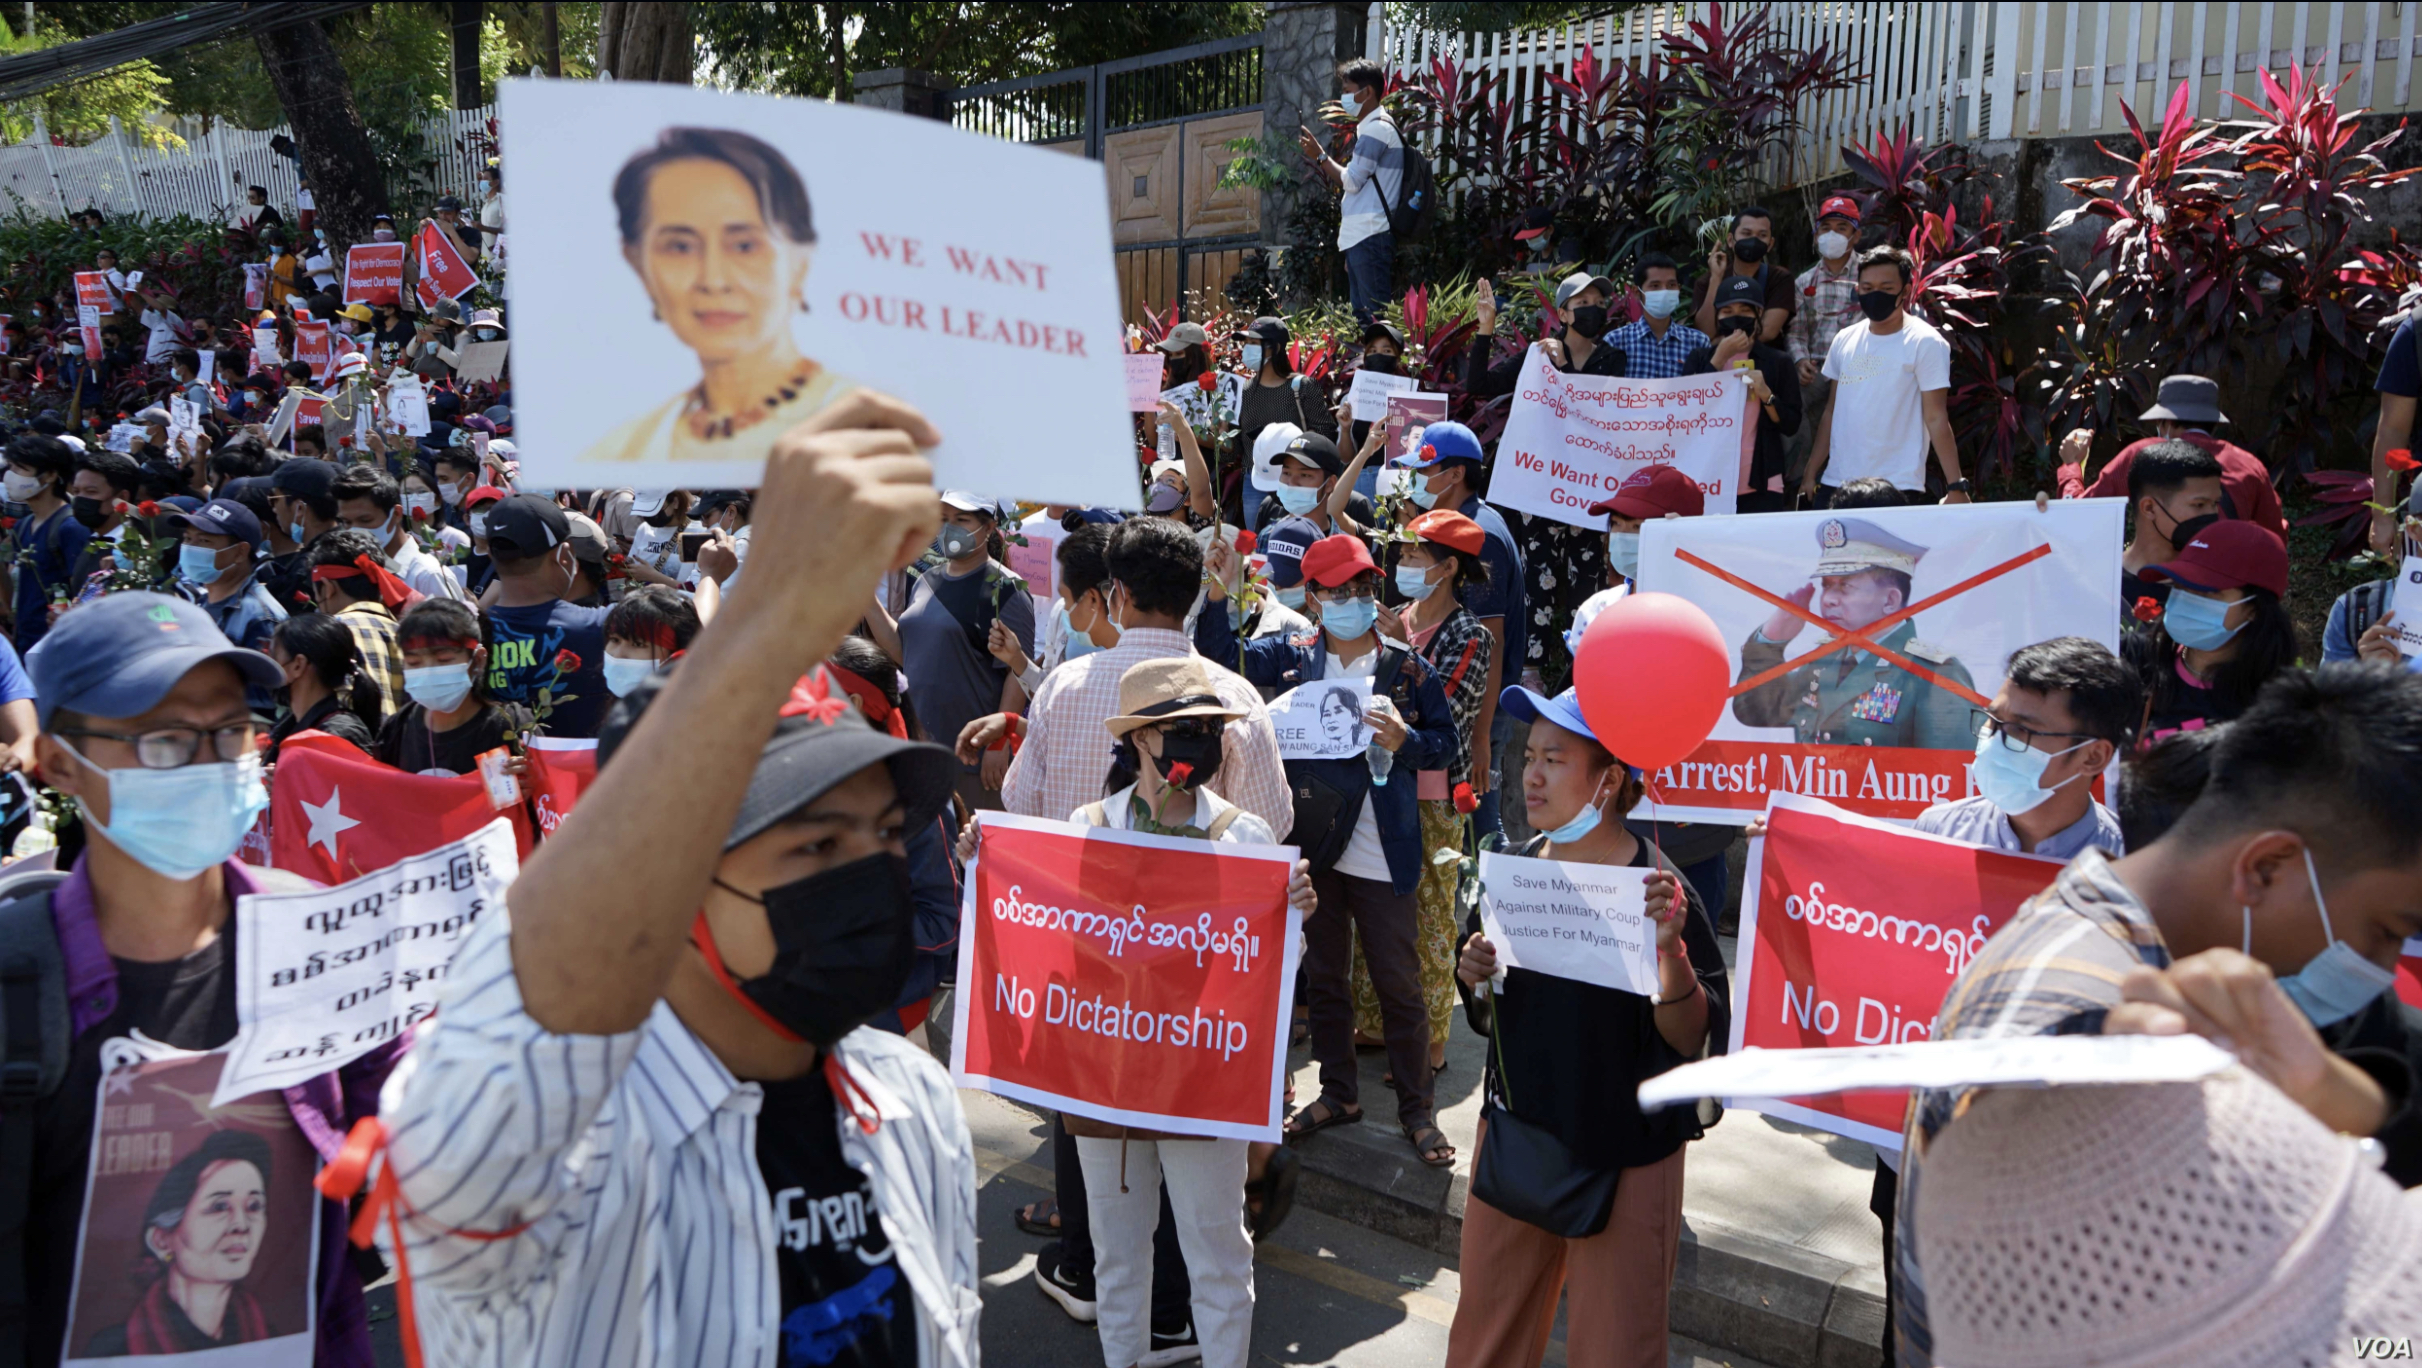 Demonstrators denounce the military coup in Myanmar. Image in the public domain.